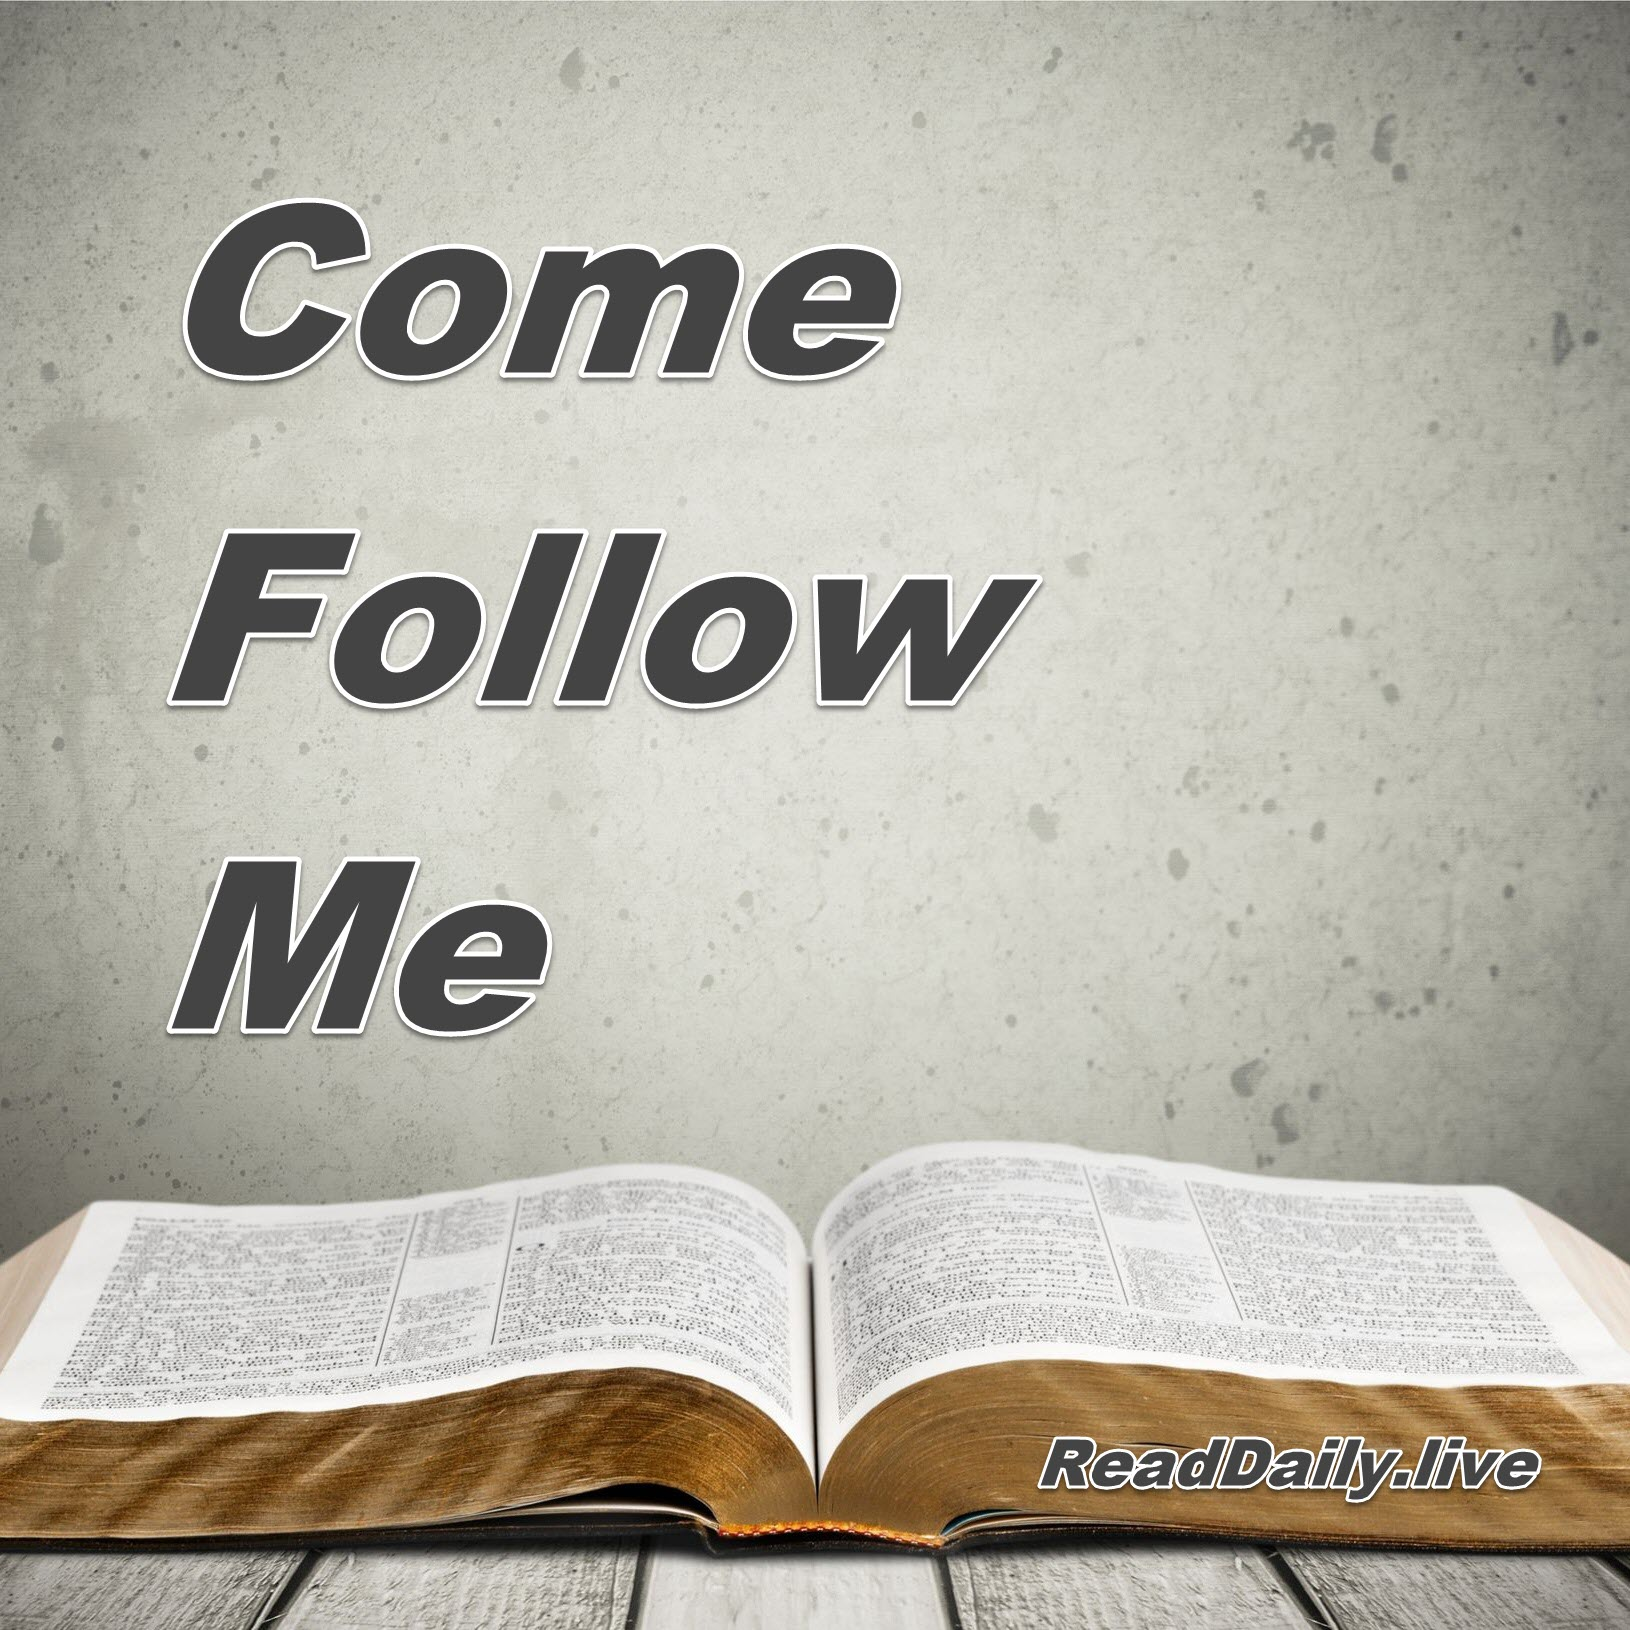 Read Daily's Come Follow Me  show image